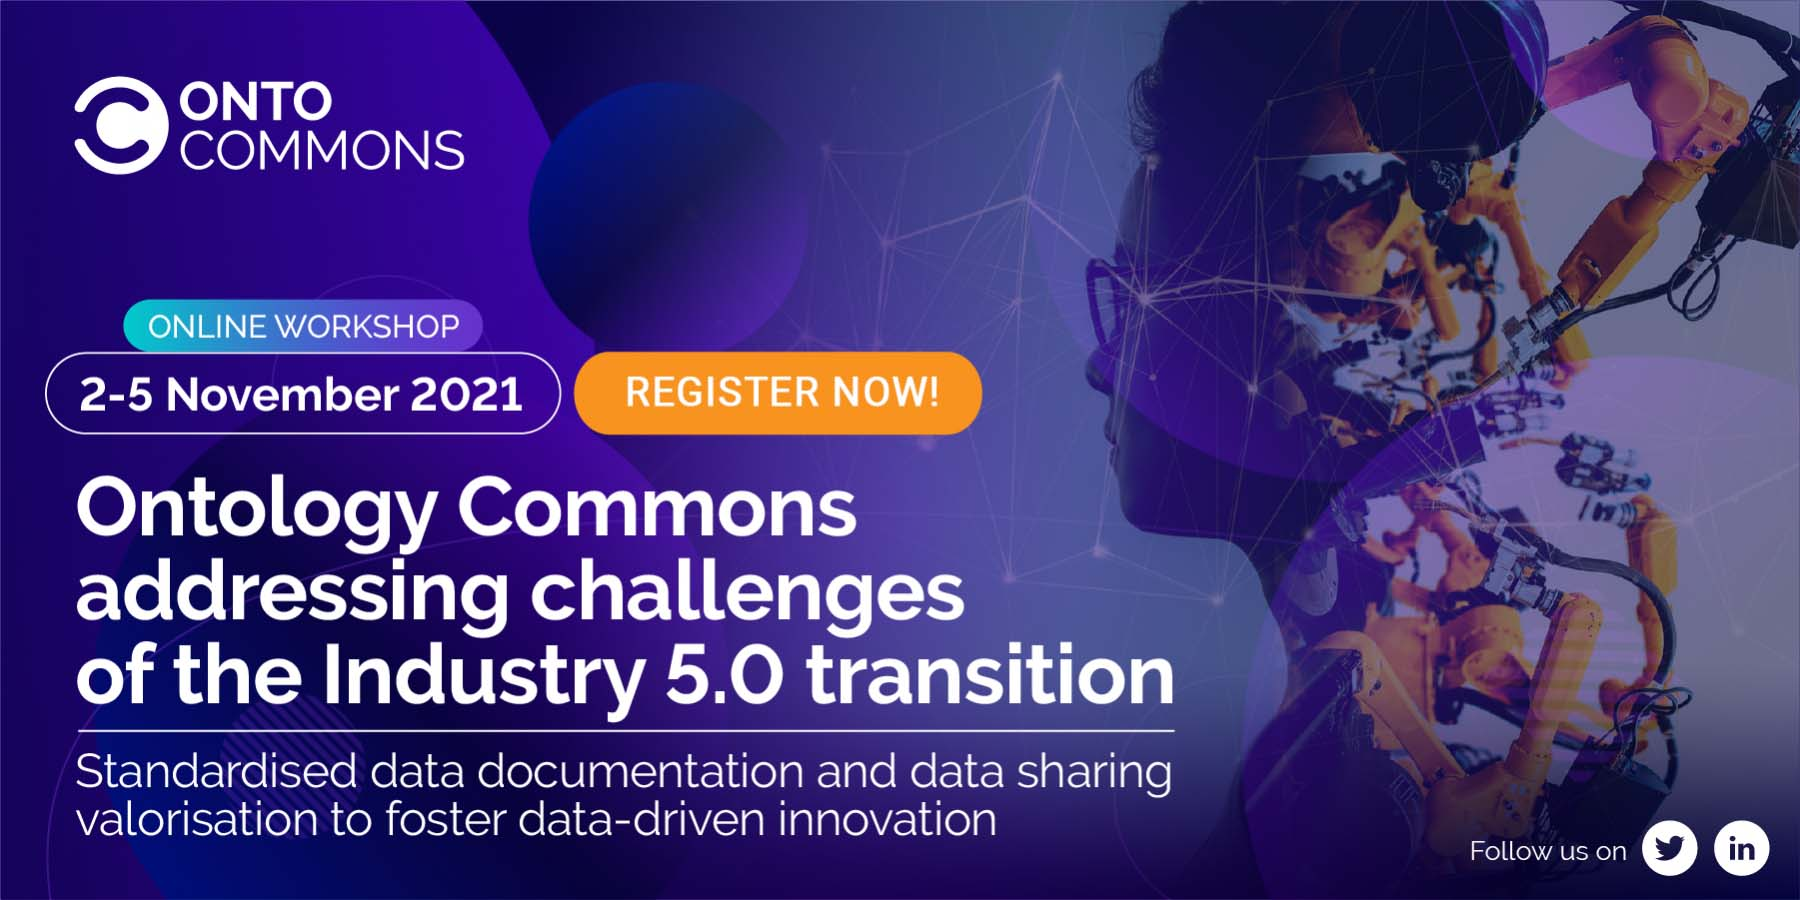 Ontology Commons Addressing Challenges of the Industry 5.0 Transition